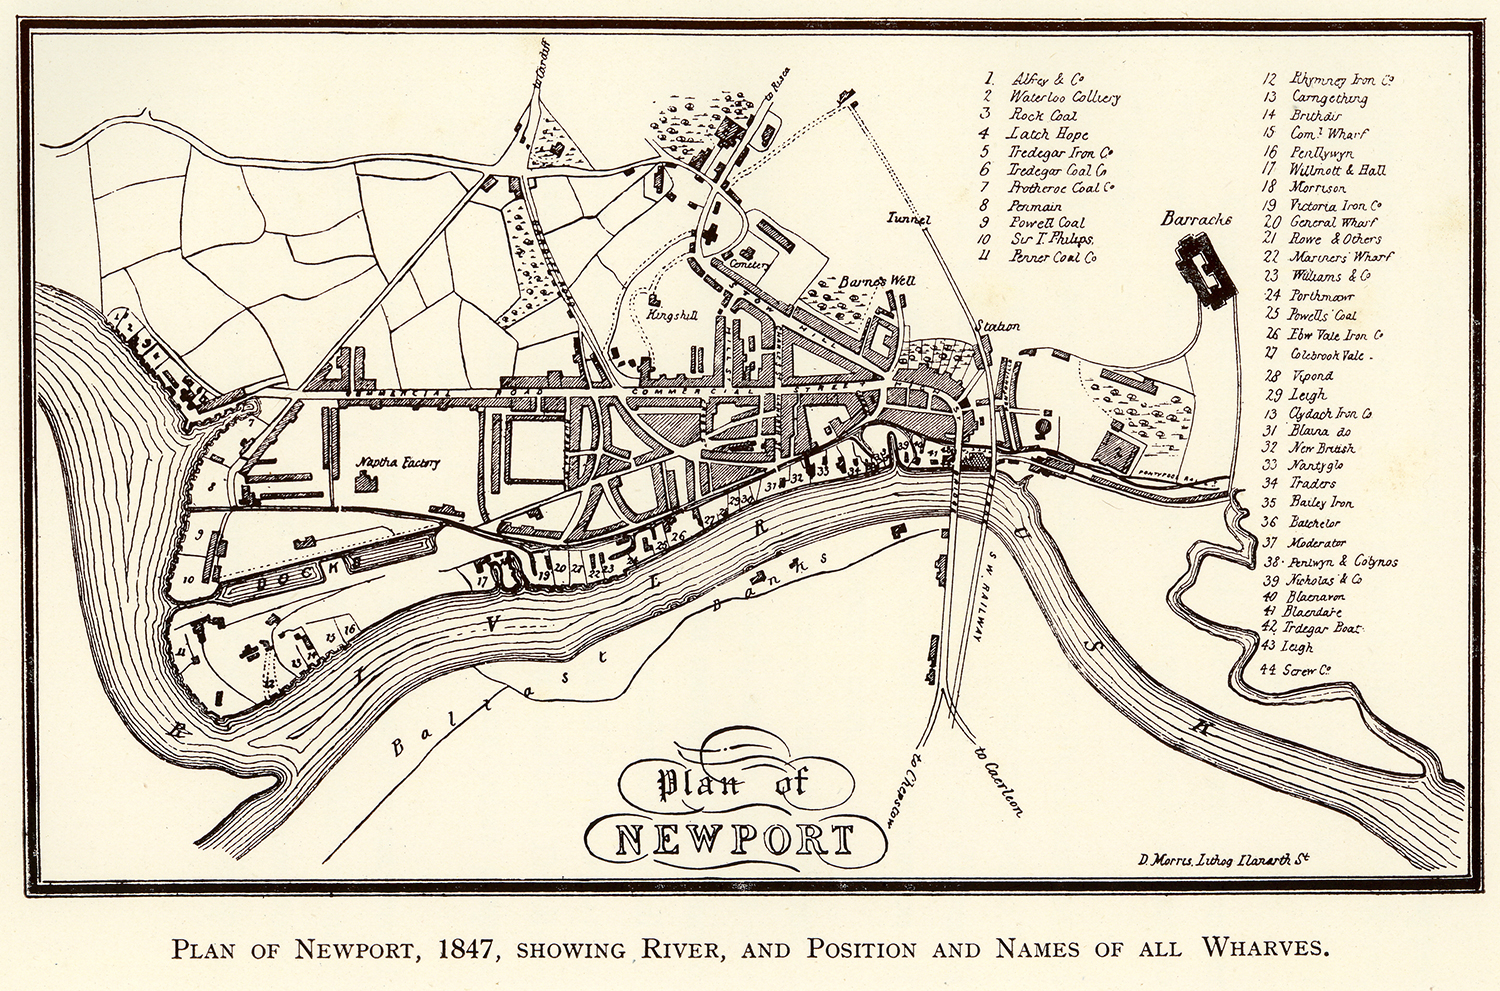 Plan of Newport, 1847. Pillgwenlly is the district numbered 12-16 by the river to the left hand side of the map.